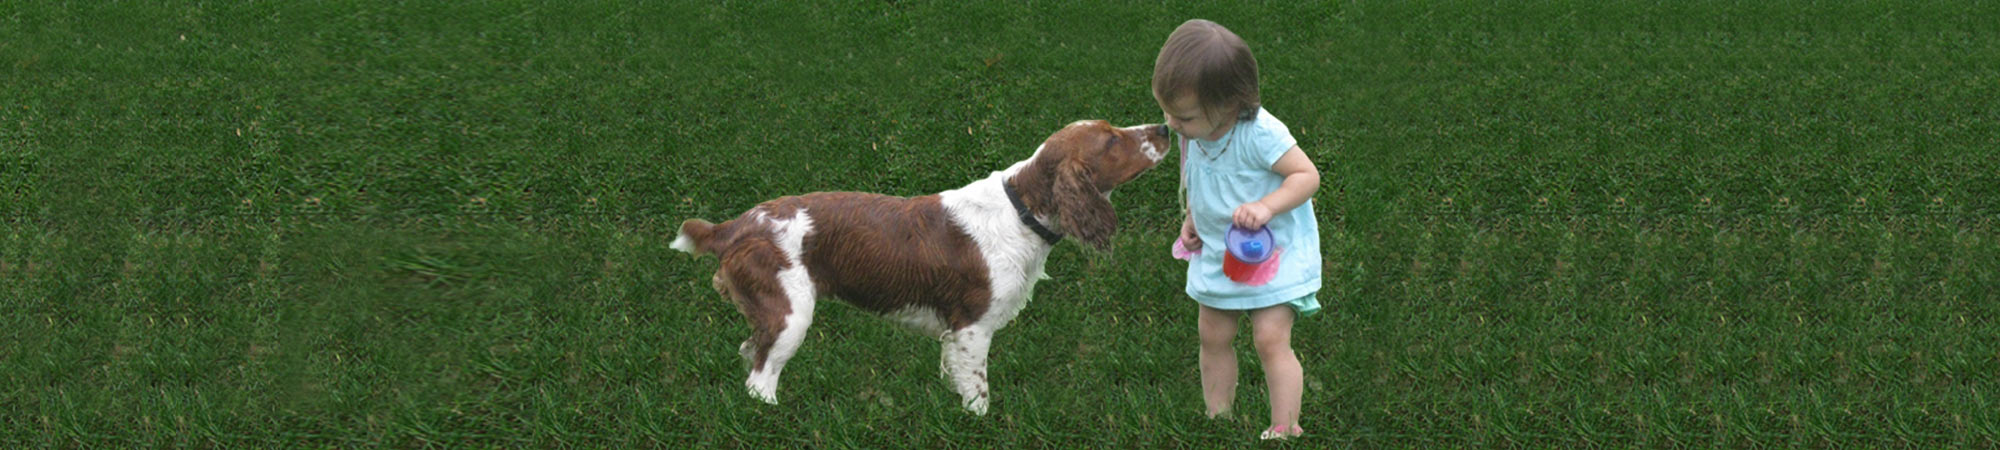 Welsh Springer Spaniel kissing little girl